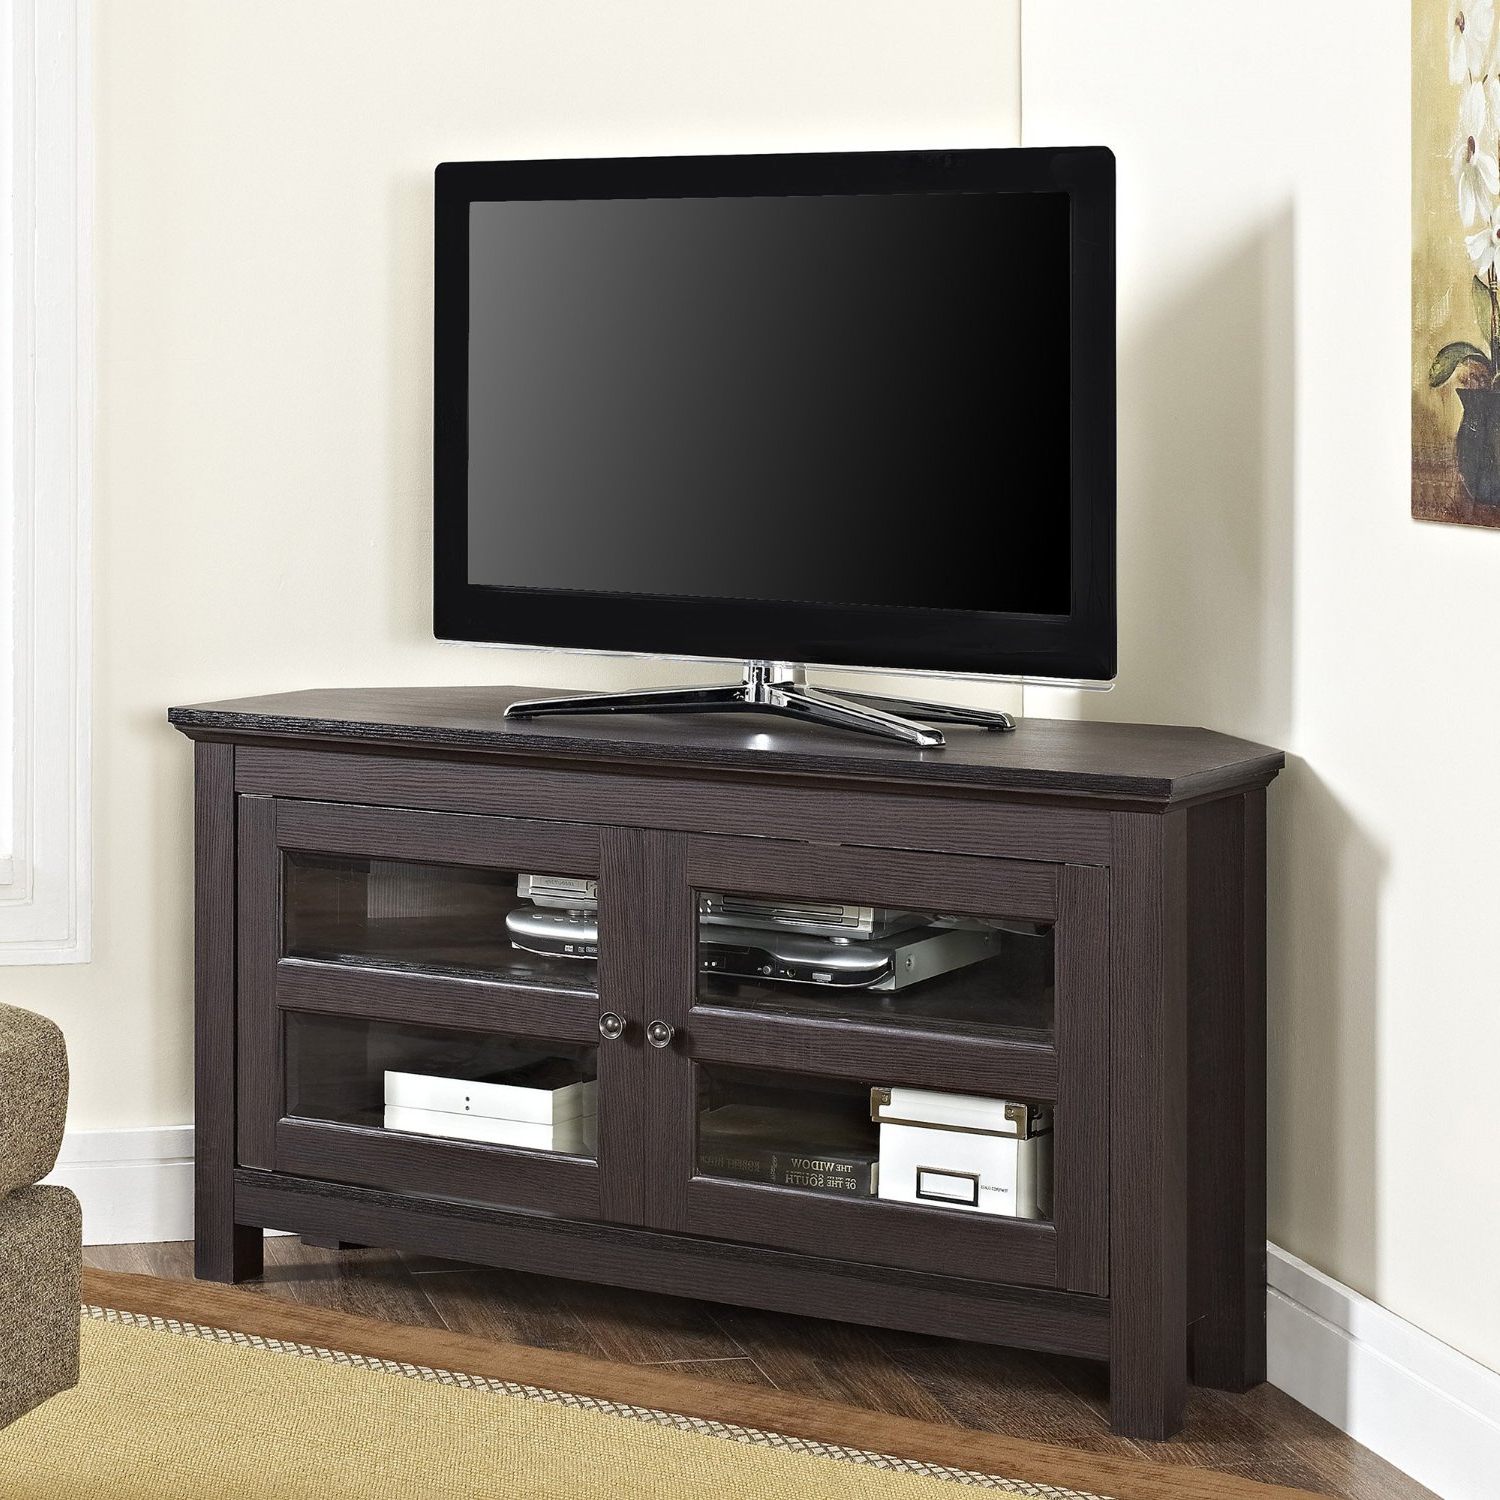 Widely Used Oak Corner Tv Stand For 50 Inch Walmart Cabinet 60 Hooker Black Within Black Corner Tv Stands For Tvs Up To  (View 20 of 20)